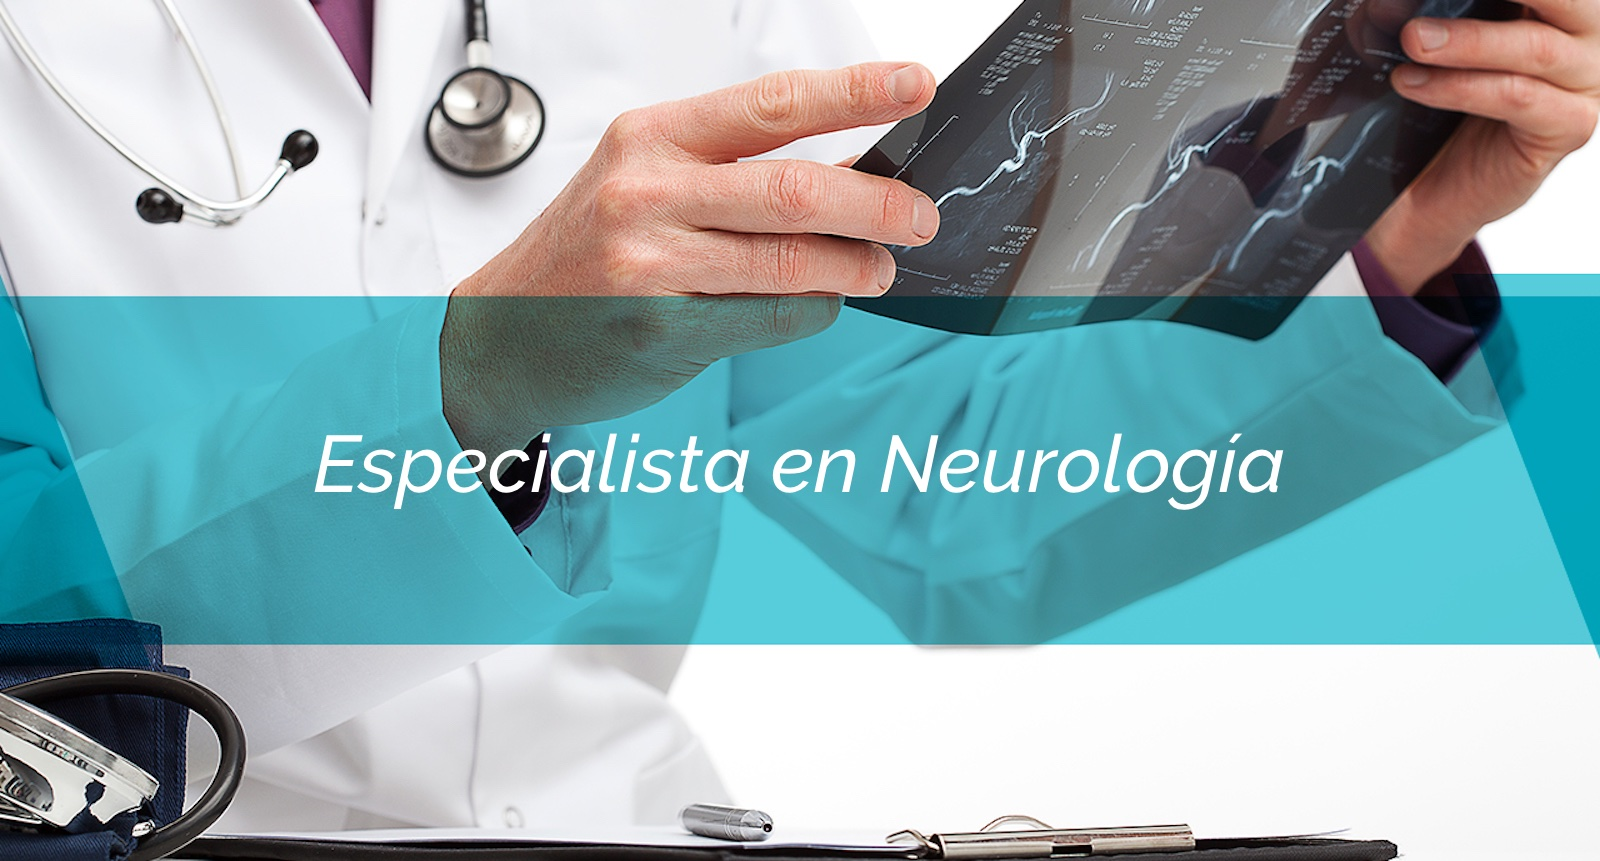 Especialista en Neurología